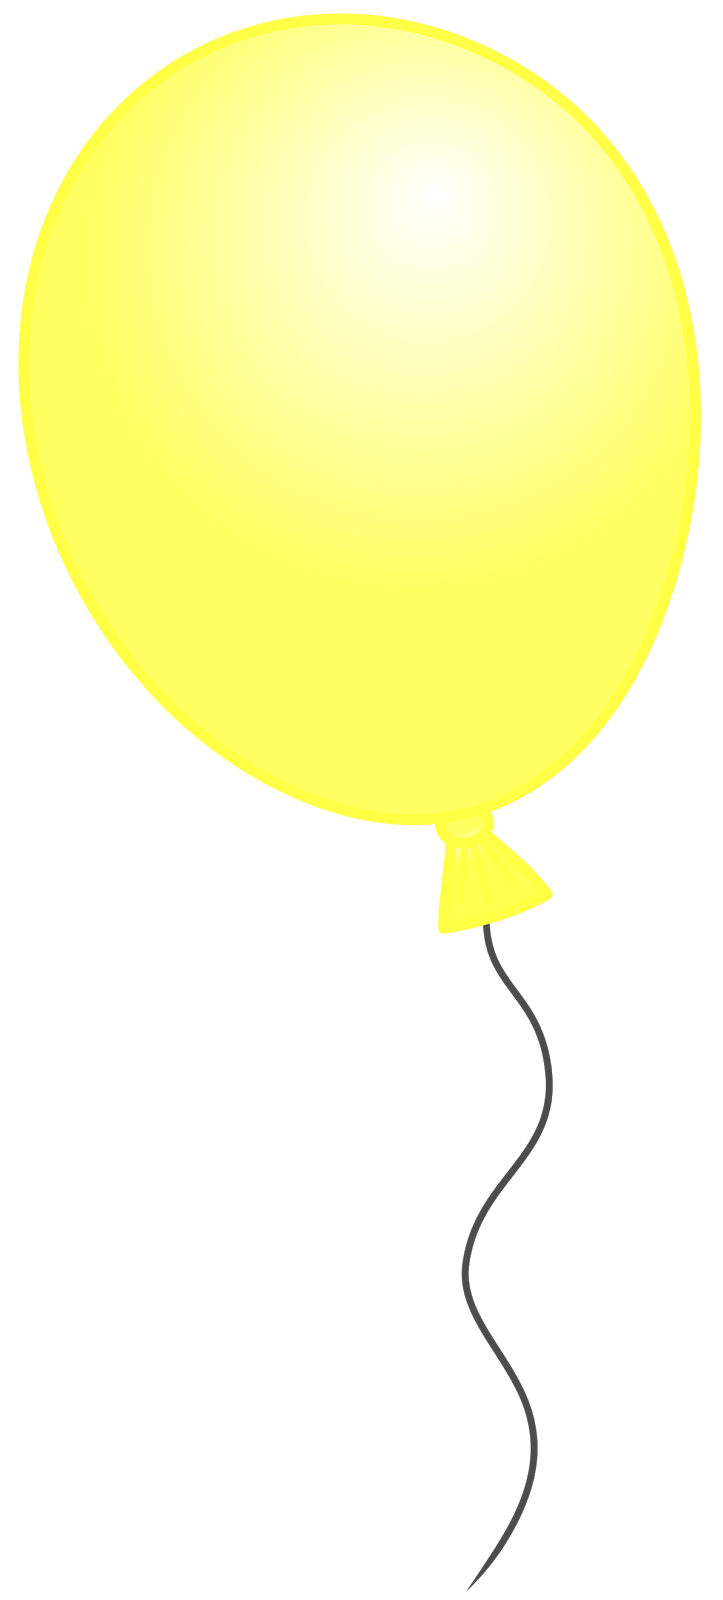 Images: Yellow Balloon Clipart.